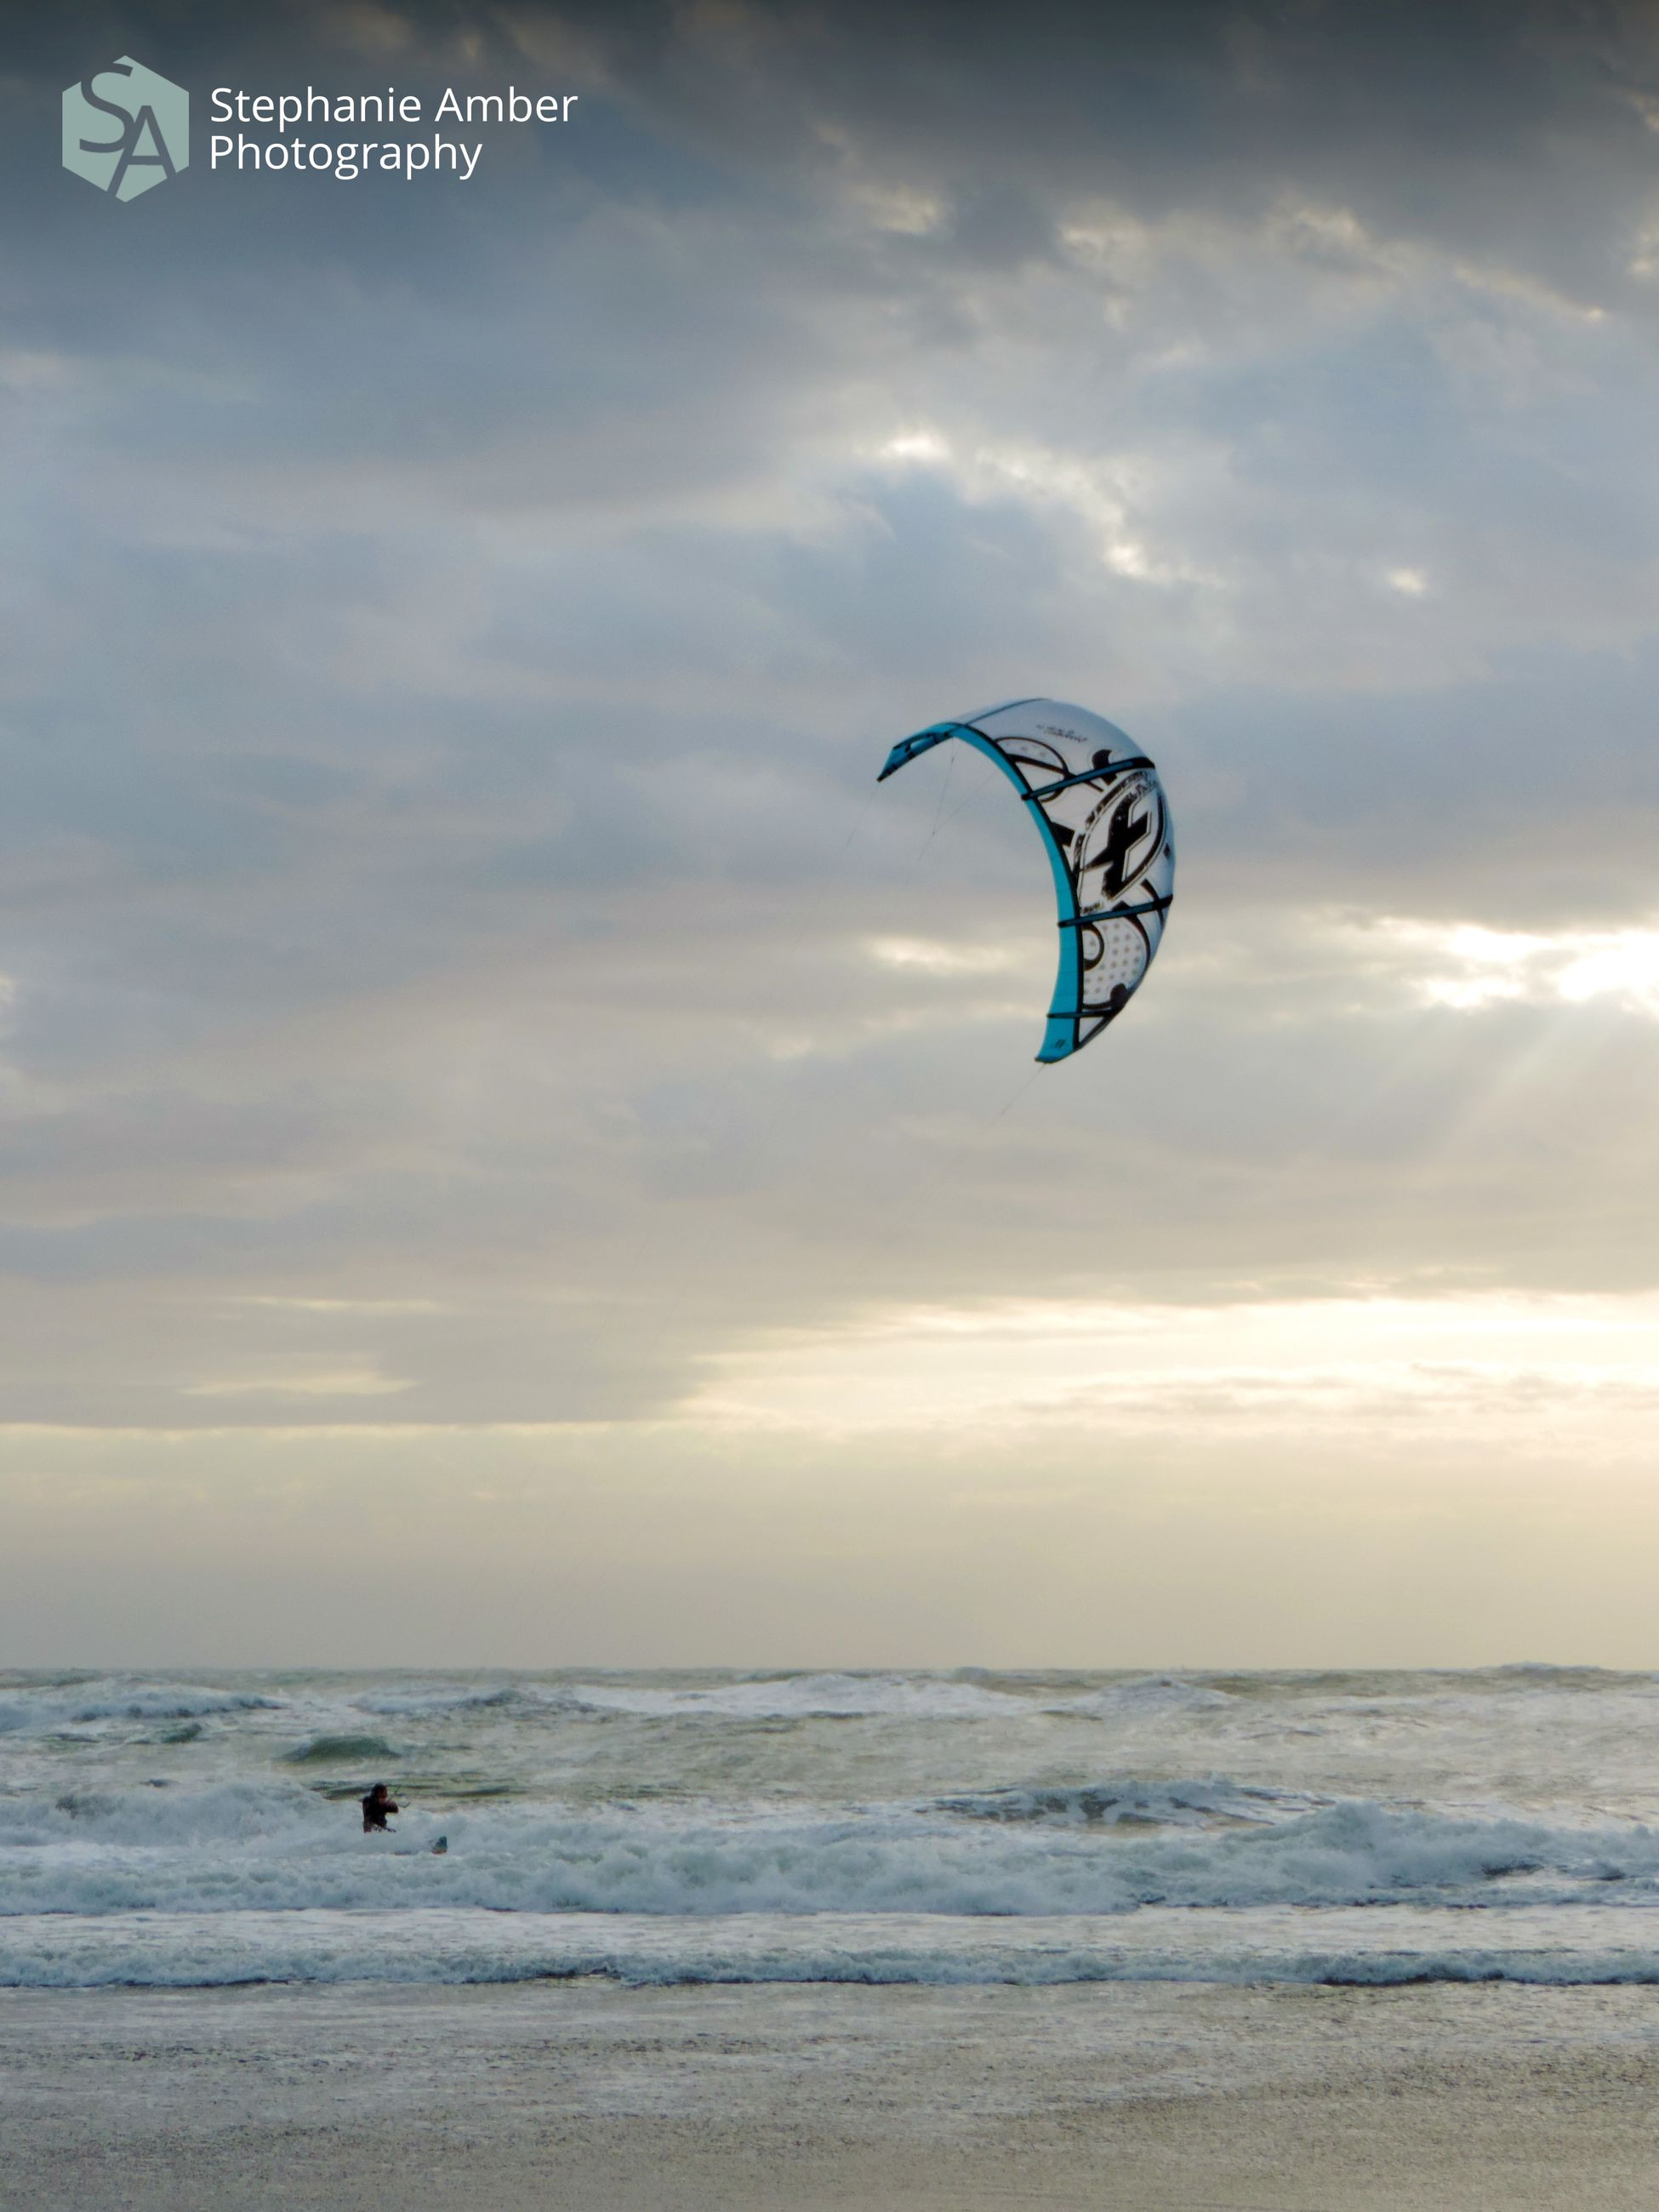 sport, sky, extreme sports, sea, adventure, water, cloud - sky, beauty in nature, parachute, horizon over water, leisure activity, nature, scenics - nature, unrecognizable person, real people, aquatic sport, lifestyles, paragliding, horizon, freedom, kiteboarding, outdoors